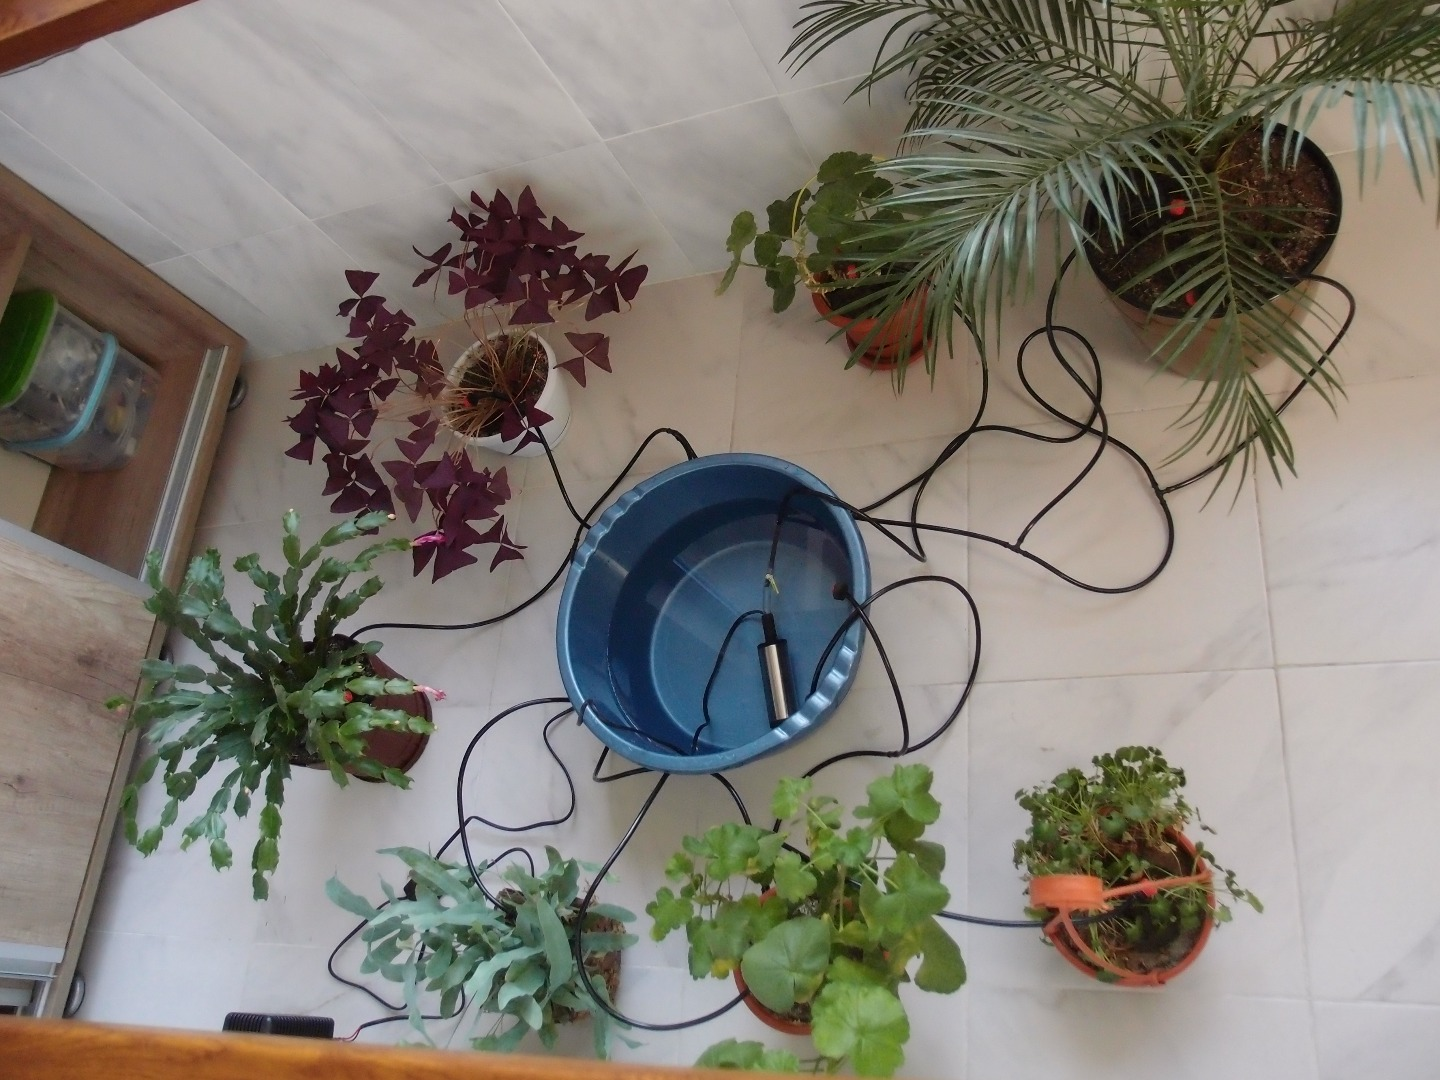 Picture of Micro Irrigation System for House Plants